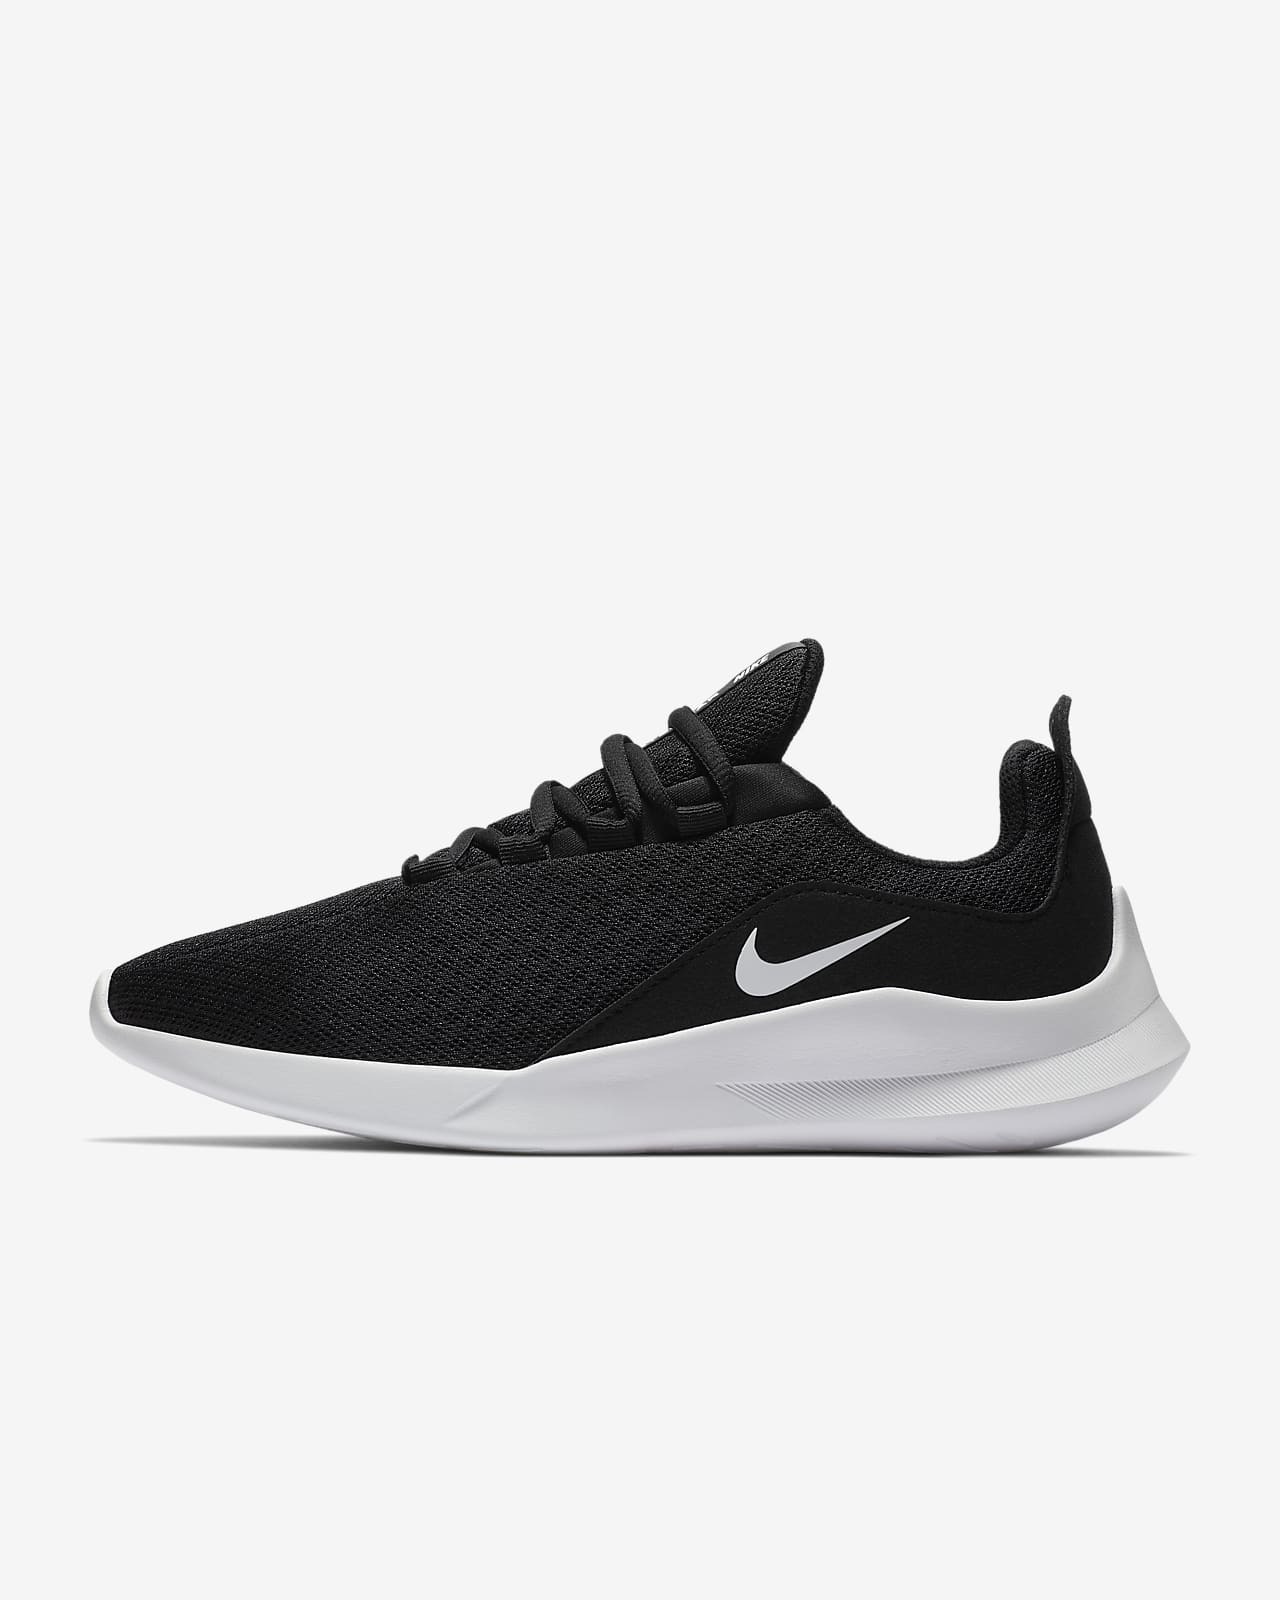 Escoba Regan barrer  Nike Viale Women's Shoe. Nike GB